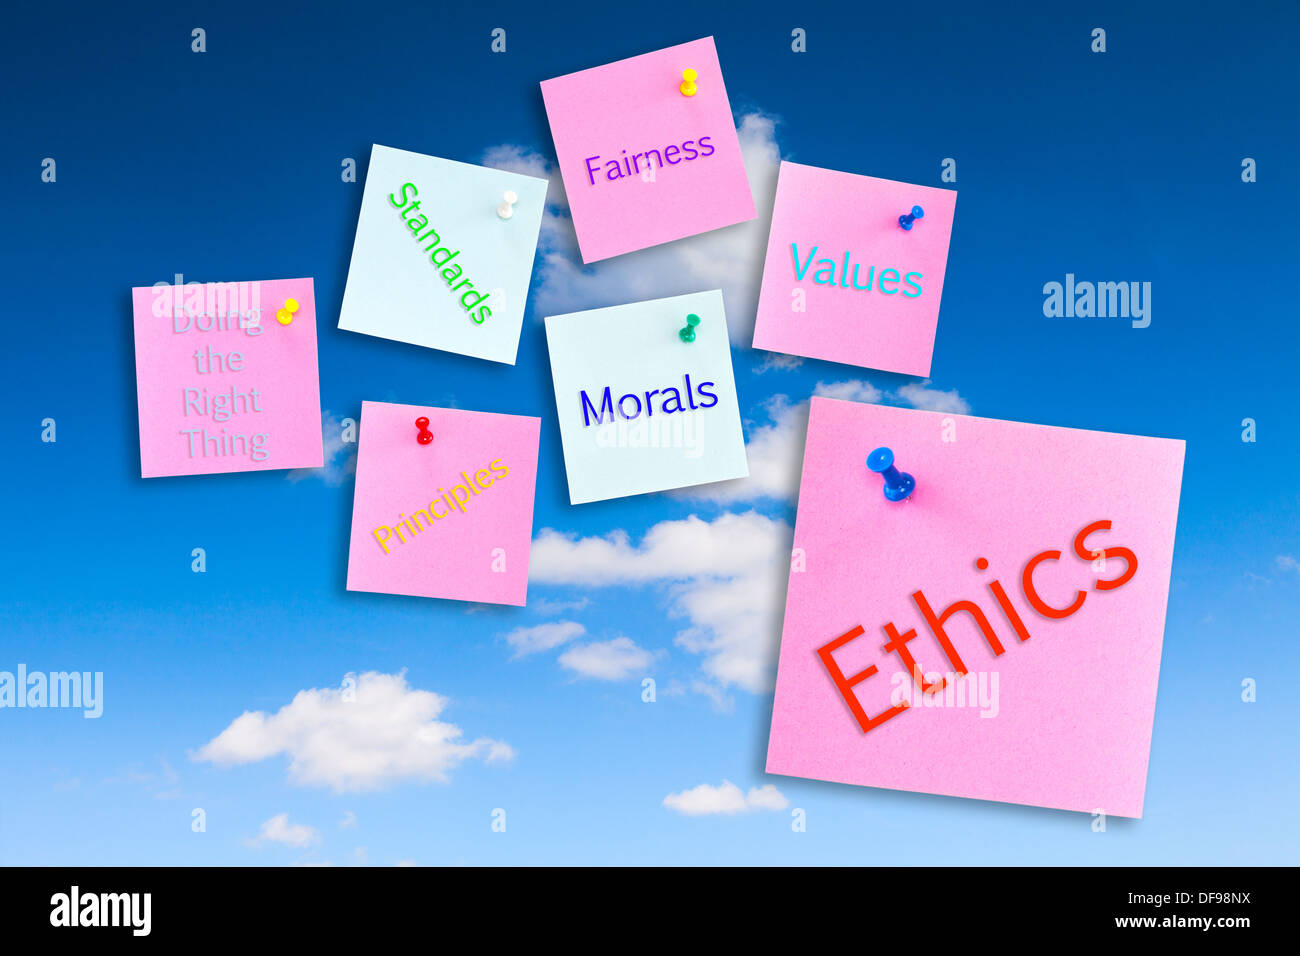 Ethics Concept - notes pinned to a blue sky, ethics,morals,values,fairness,standards,principles,doing the right thing. - Stock Image